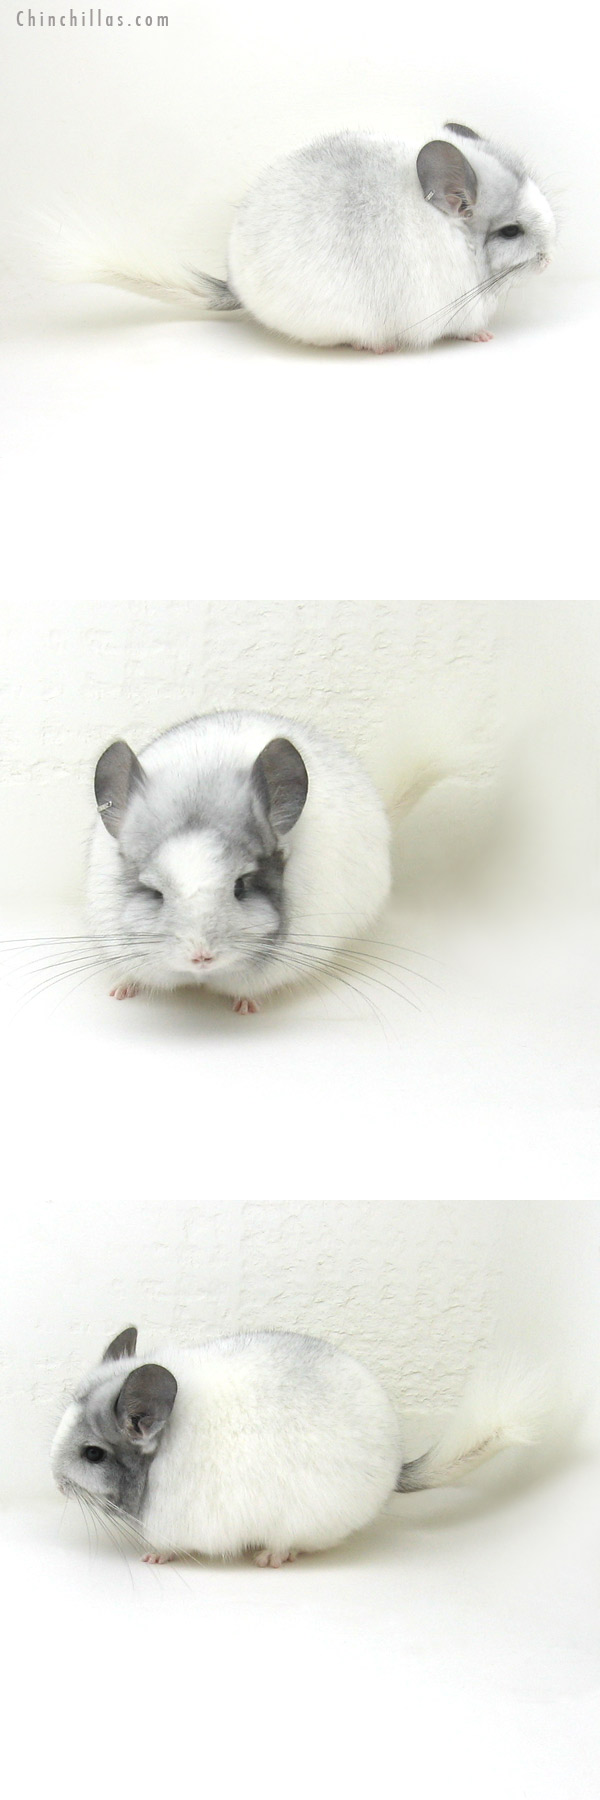 12176 White Mosaic Royal Persian Angora Female Chinchilla